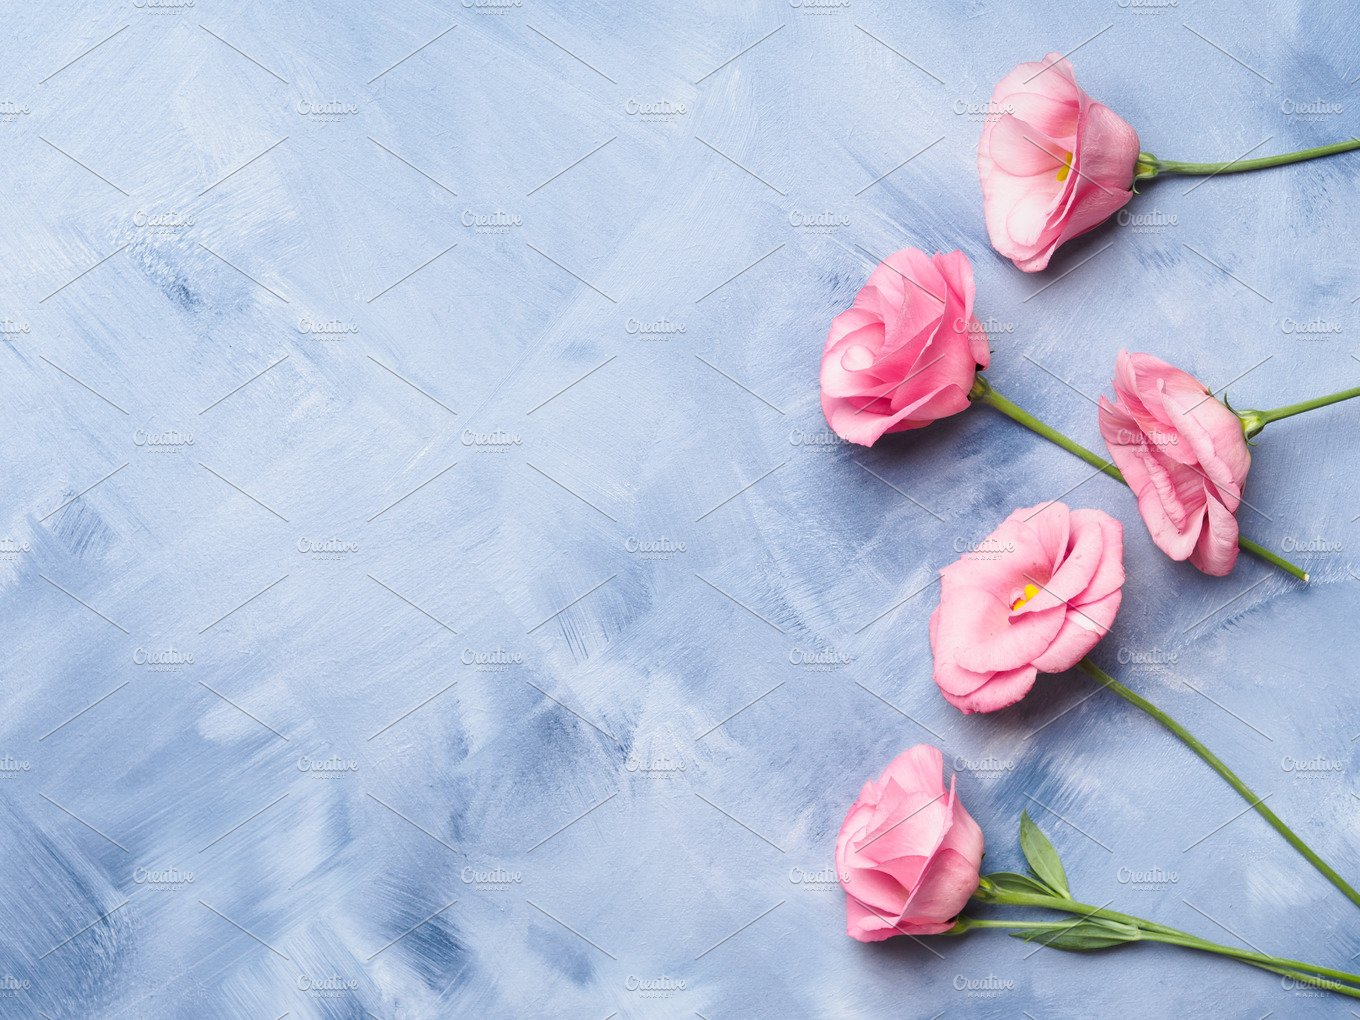 Blue Background With Pink Flowers Arts Entertainment Photos Creative Market